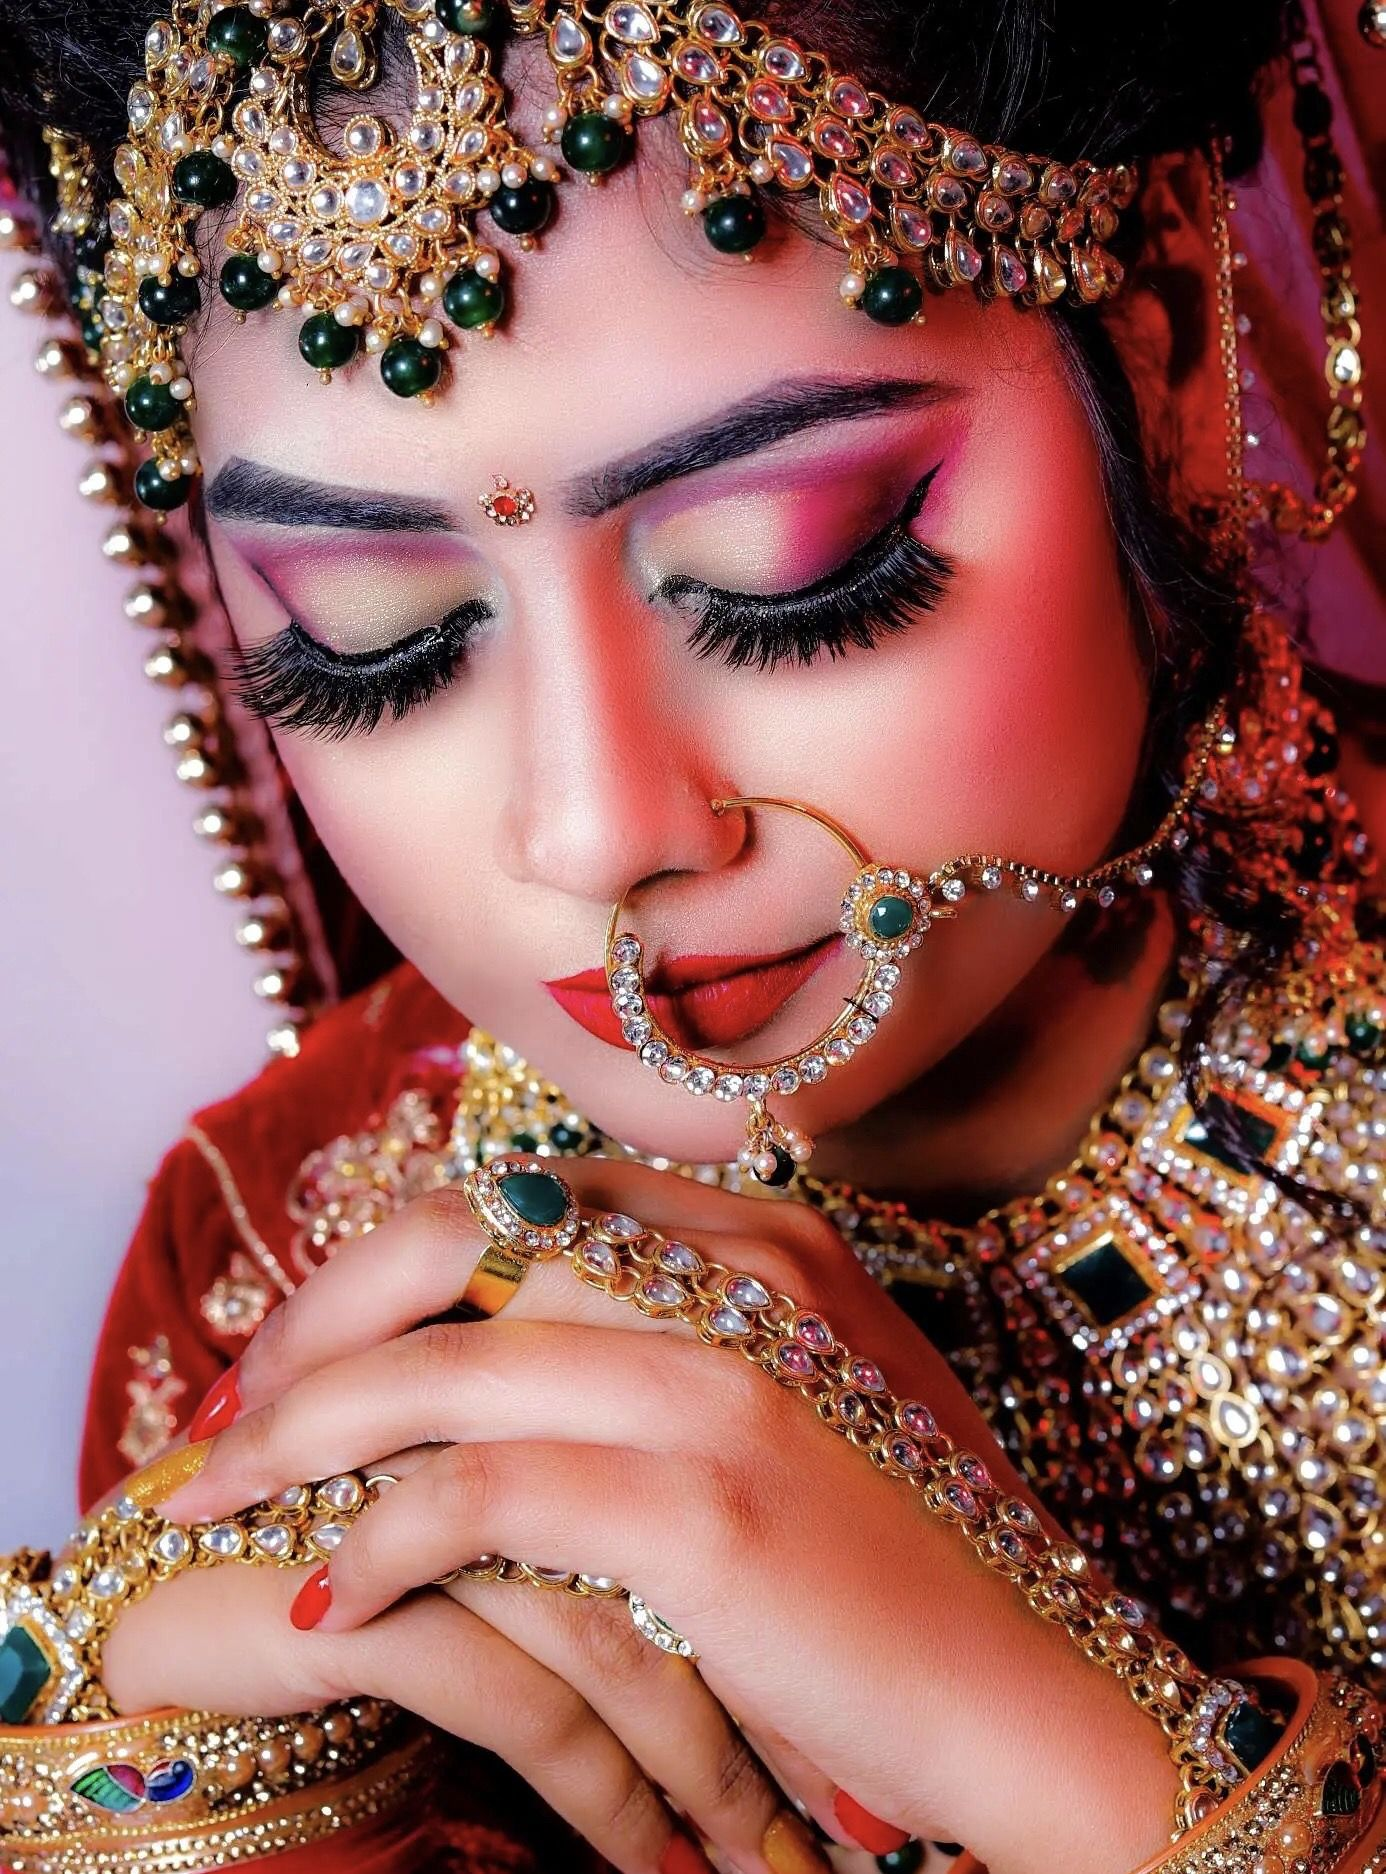 Pin by Natalie on Bridal Makeup Images in 2020 Bridal